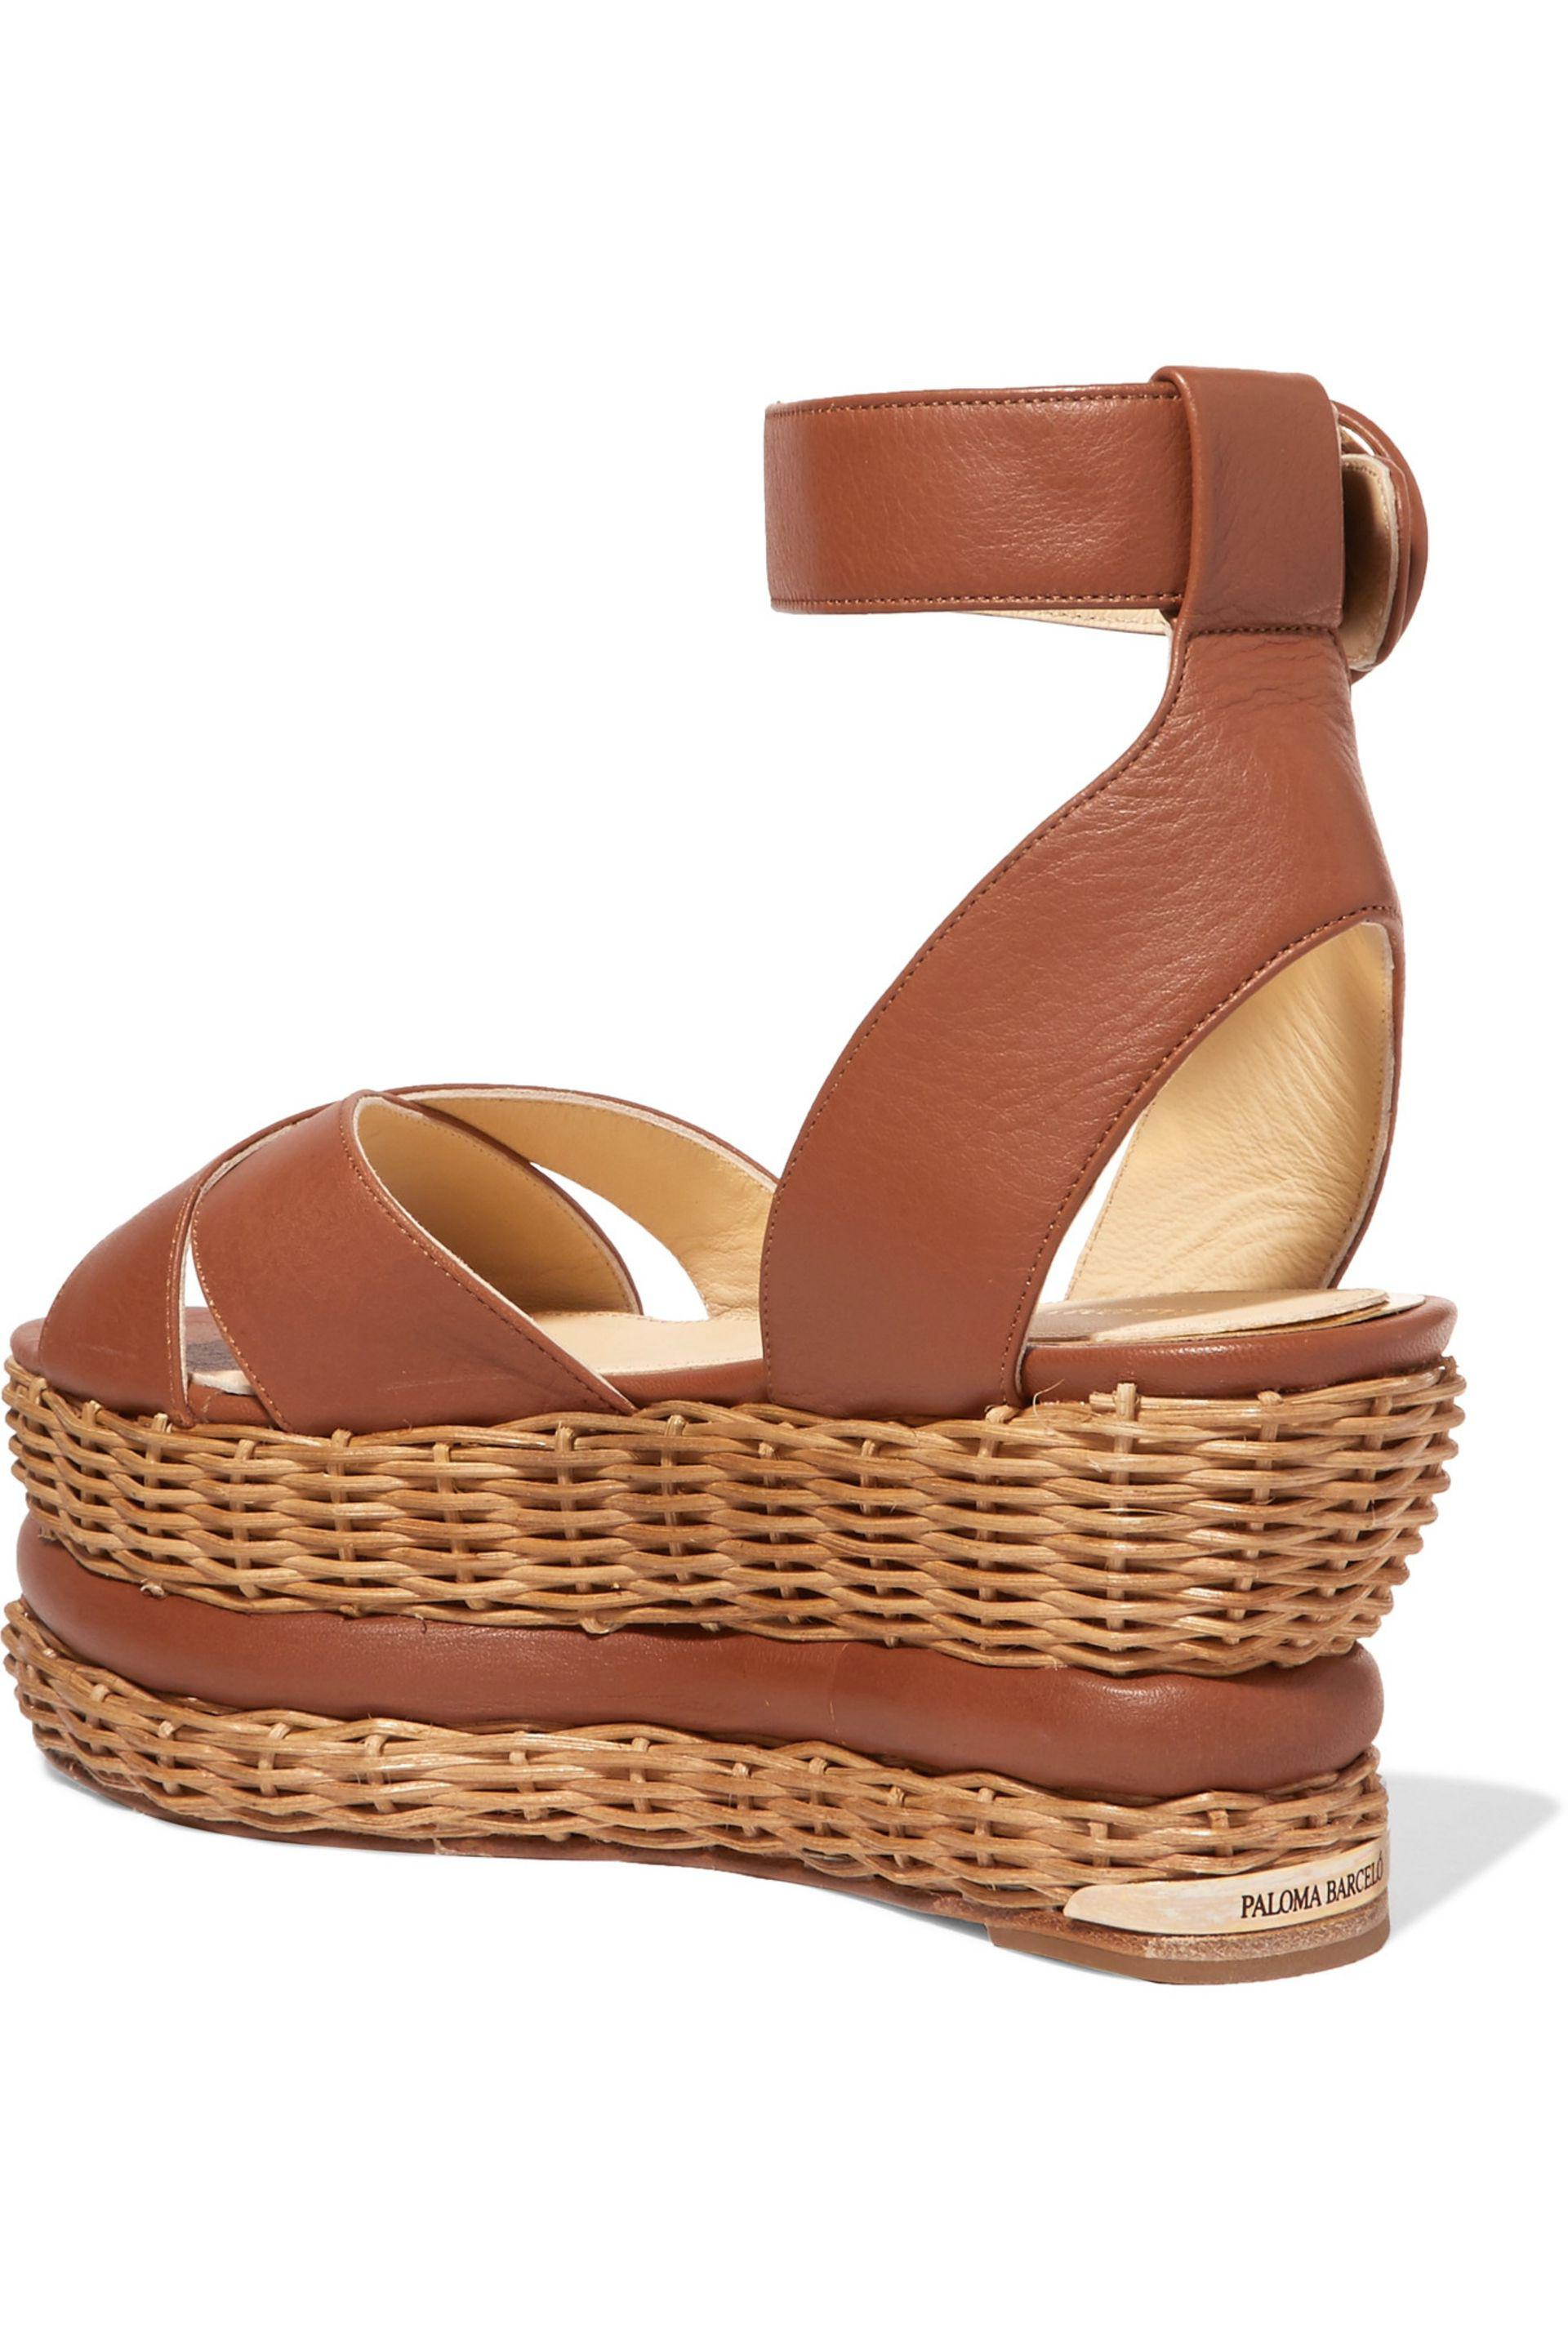 89f2bc5a28c Paloma Barceló Violette Woven And Leather Platform Sandals in Brown ...